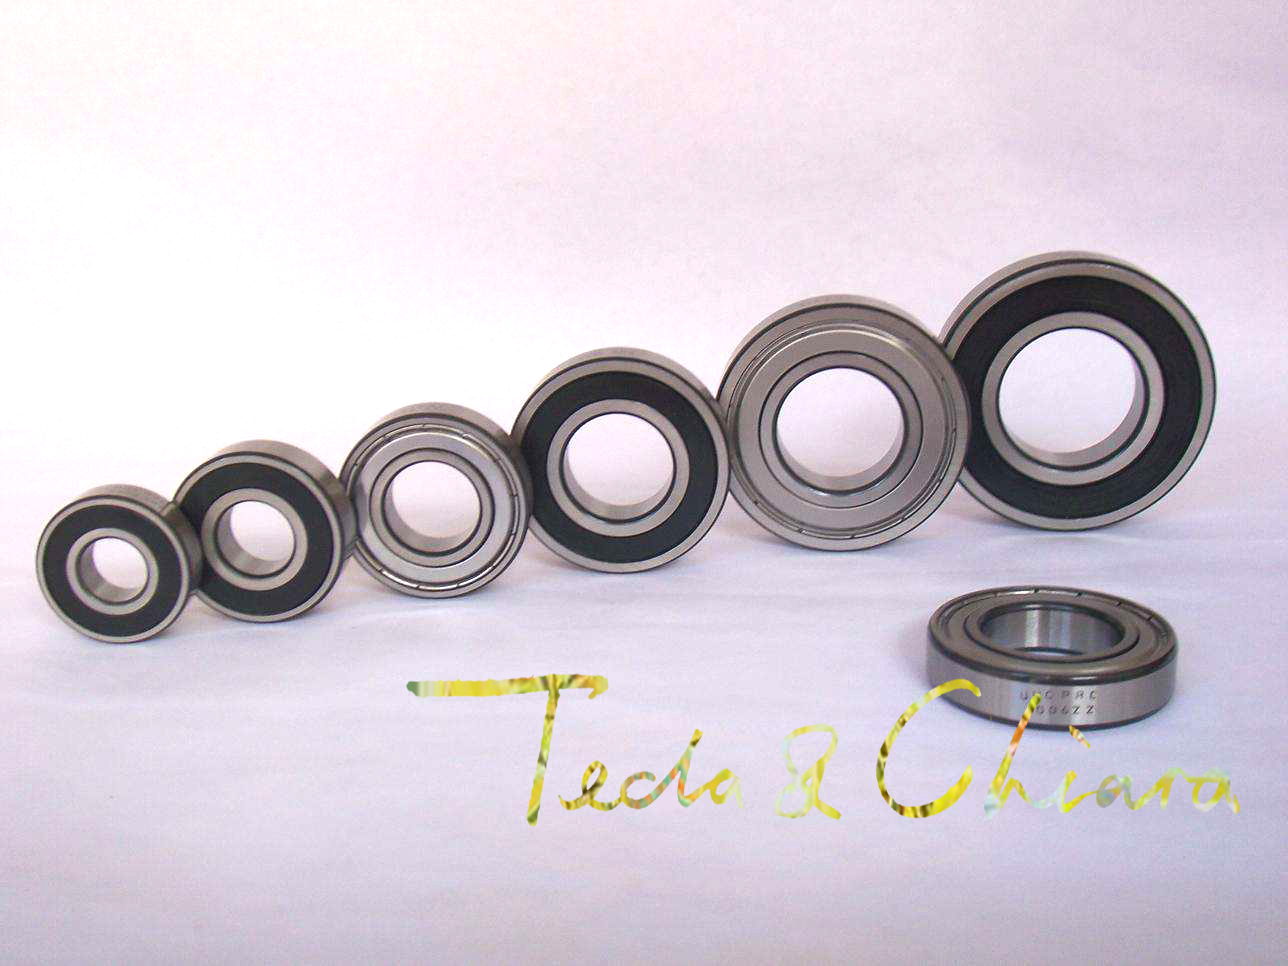 MR115 MR115ZZ MR115RS MR115-2Z MR115Z MR115-2RS ZZ RS RZ 2RZ Deep Groove Ball Bearings 5 x 11 x 4mm High Quality 604 604zz 604rs 604 2z 604z 604 2rs zz rs rz 2rz deep groove ball bearings 4 x 12 x 4mm high quality